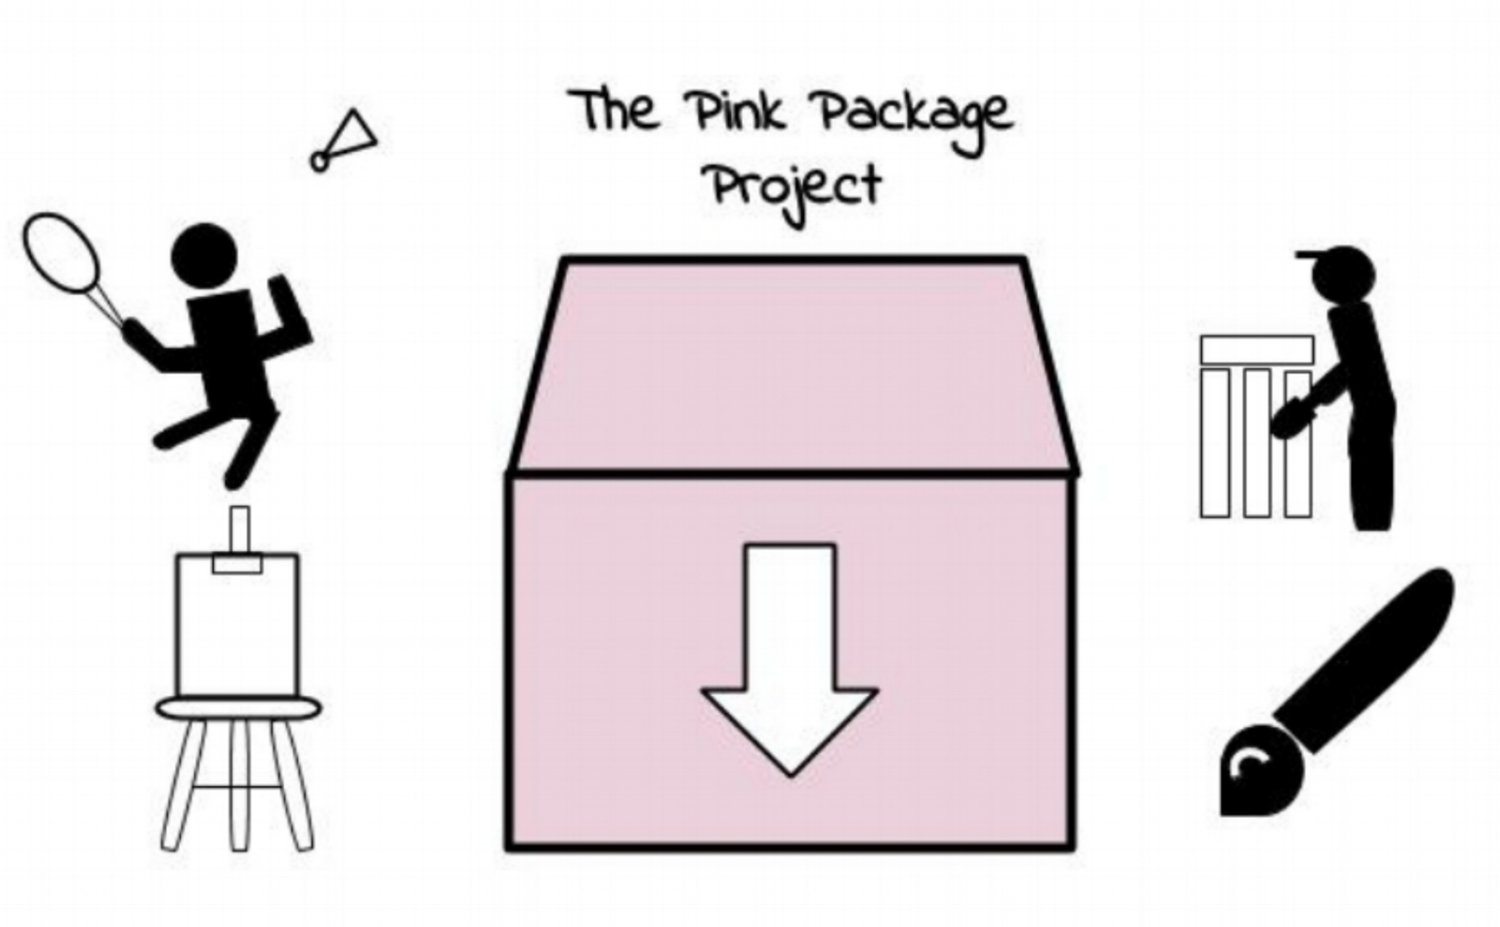 The Pink Package Project